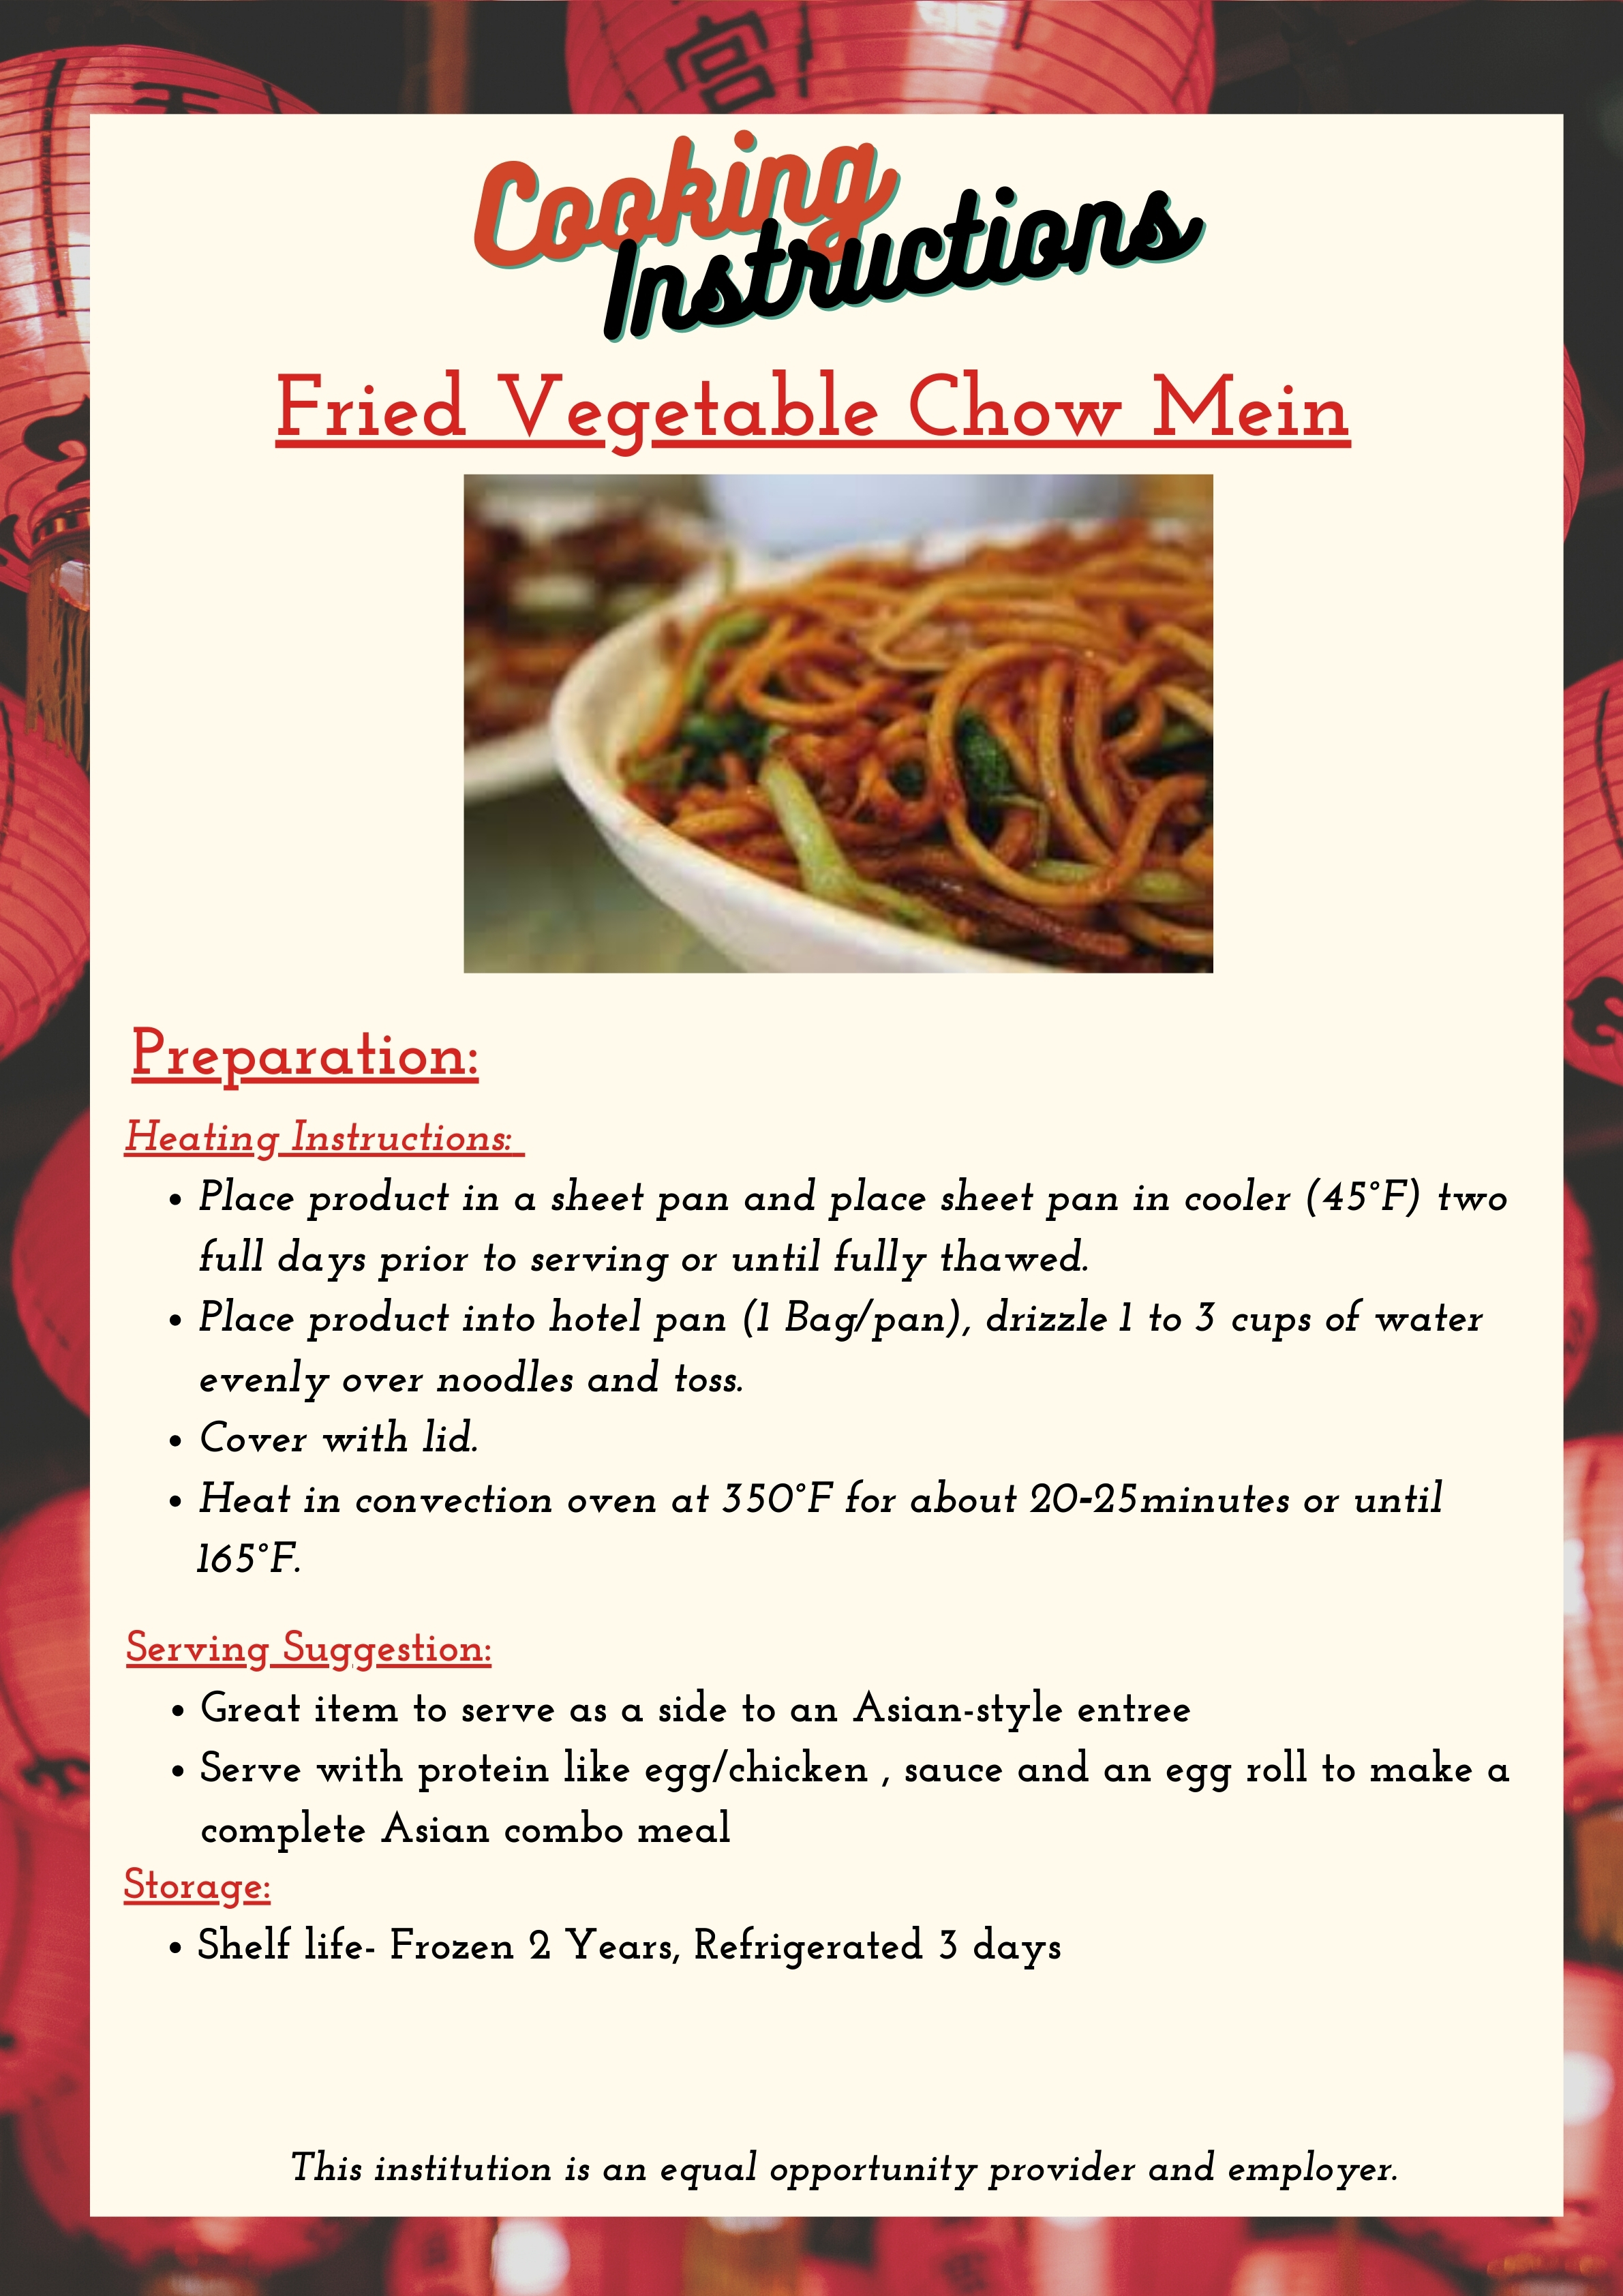 Fried Vegetable Chow Mein.jpg